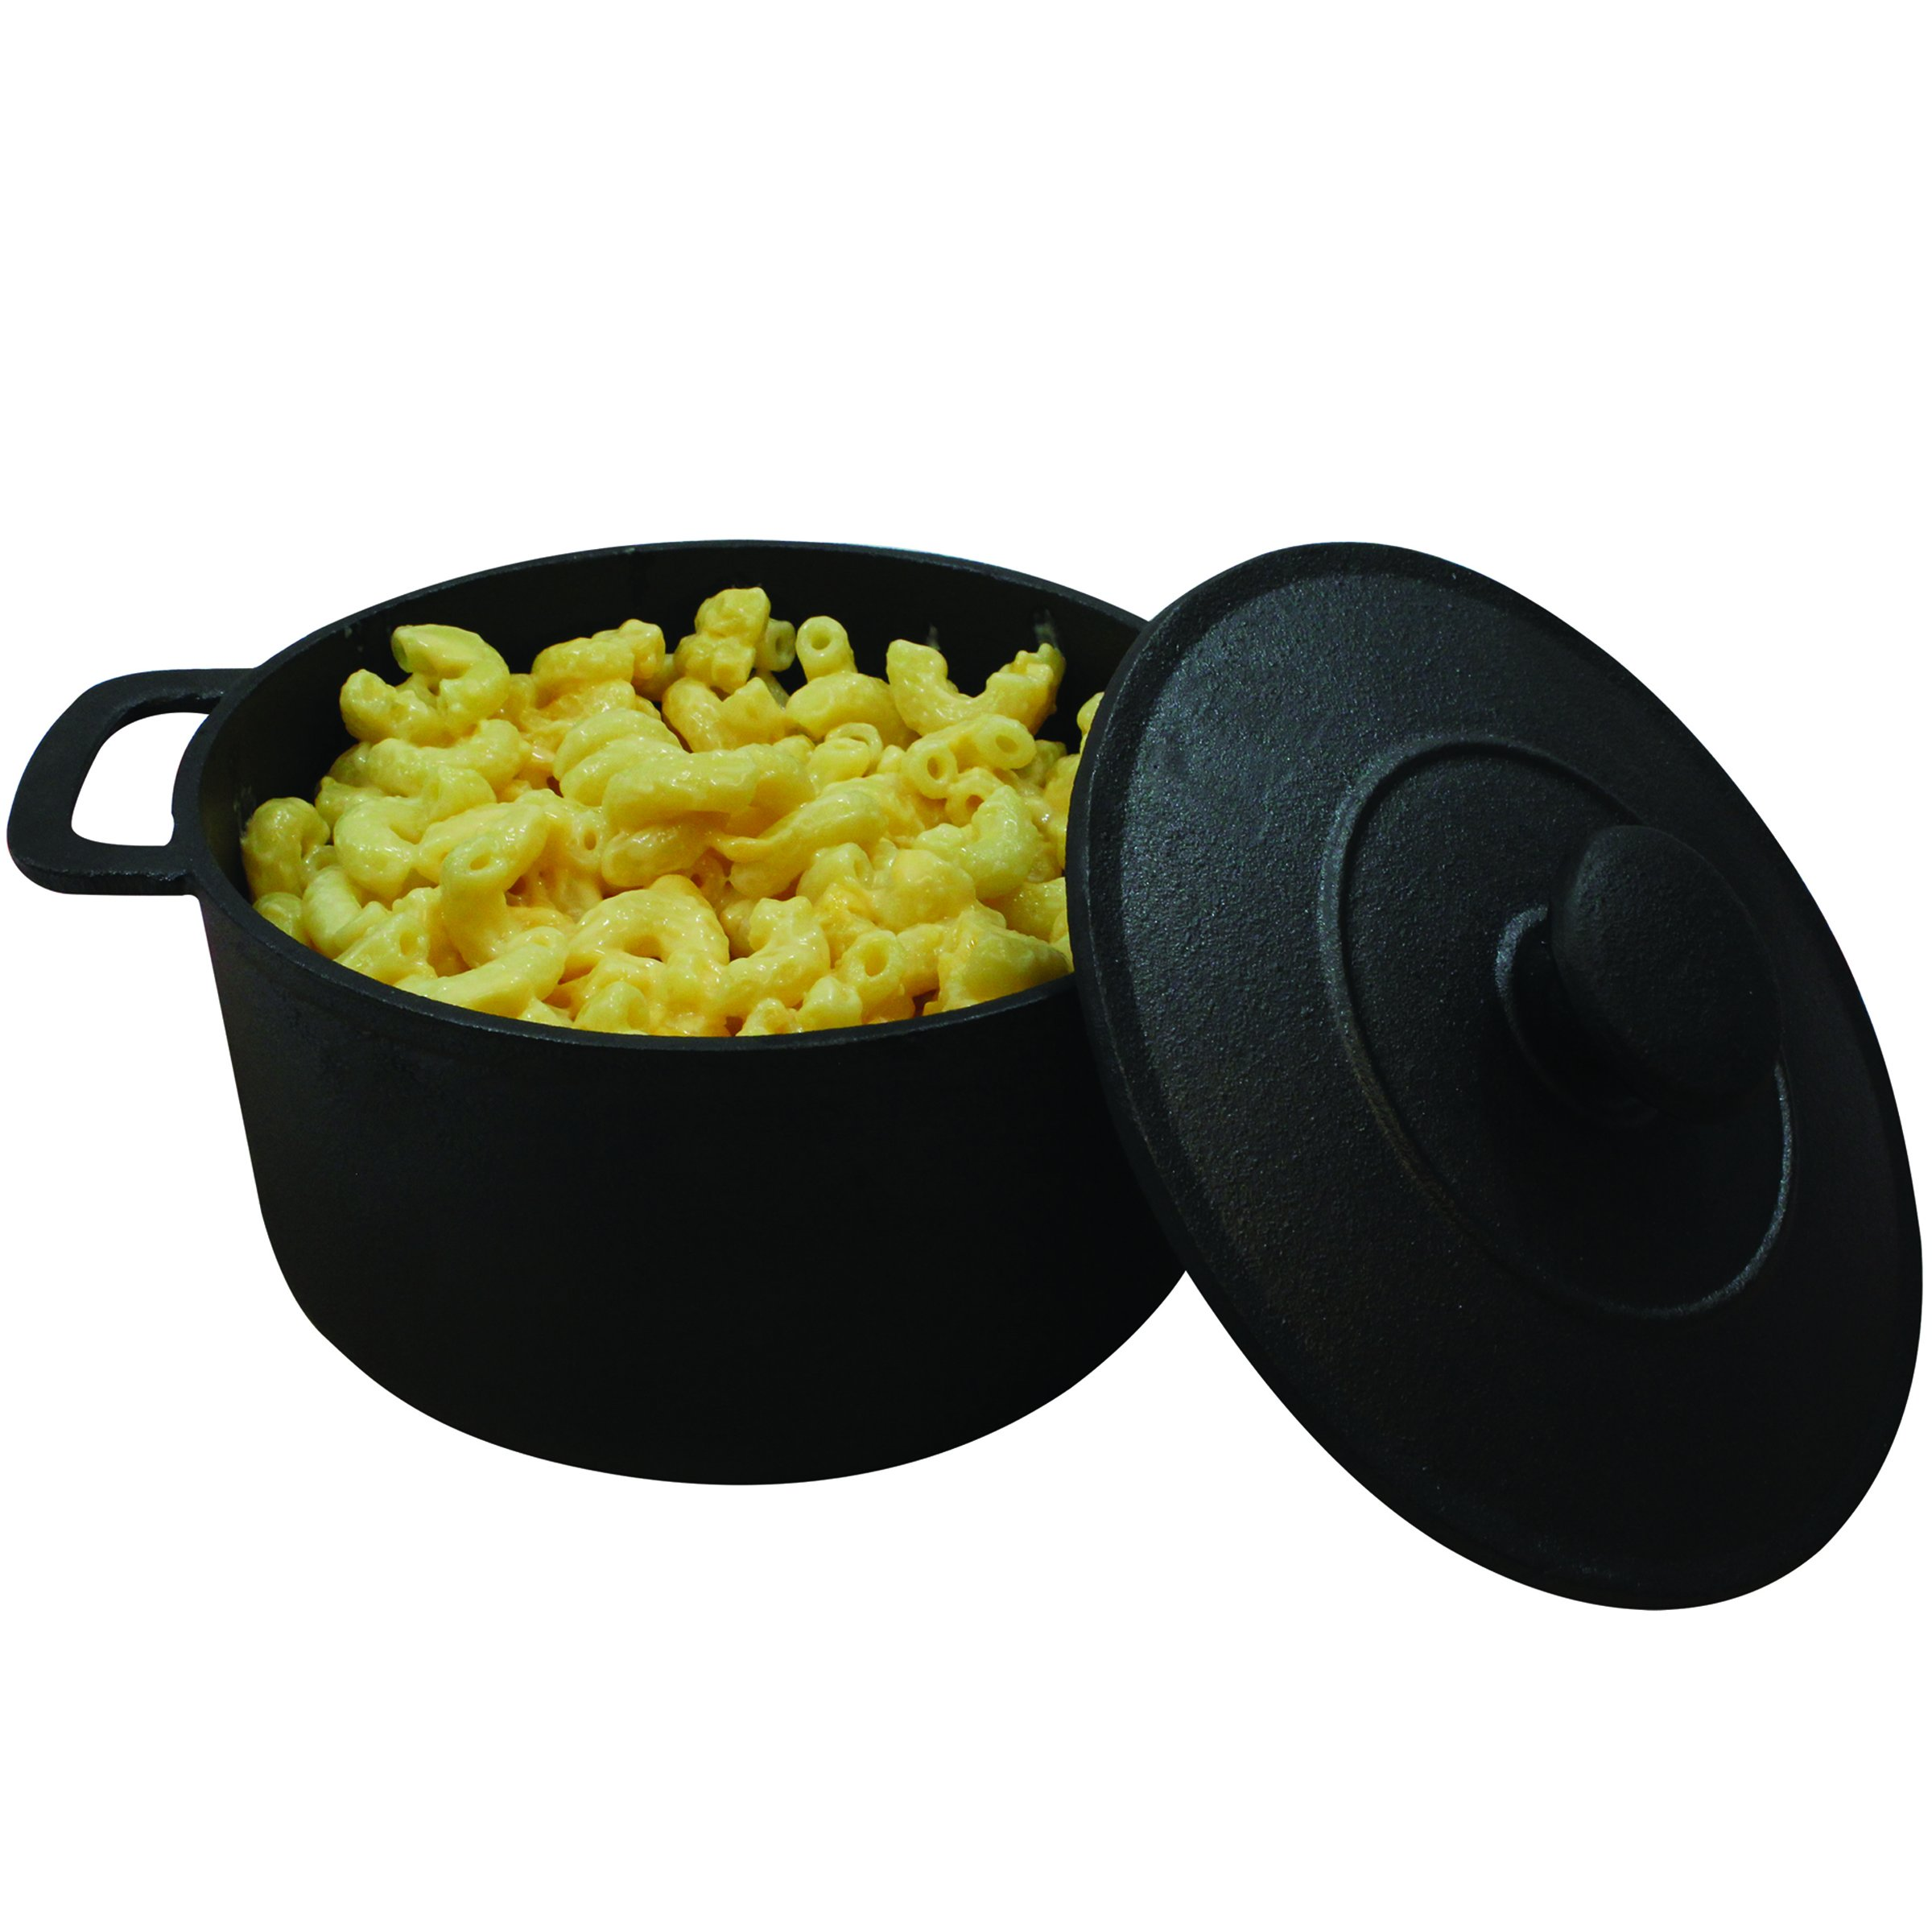 """TableCraft Products CW30148 Cast Iron Mini Round Casserole with Lid,5⅛"""" Dia (6¾"""" with Handles) x 2½"""" (3¾"""" with Lid), 3.75"""" Height, 5.125"""" Width, 6.75"""" Length"""